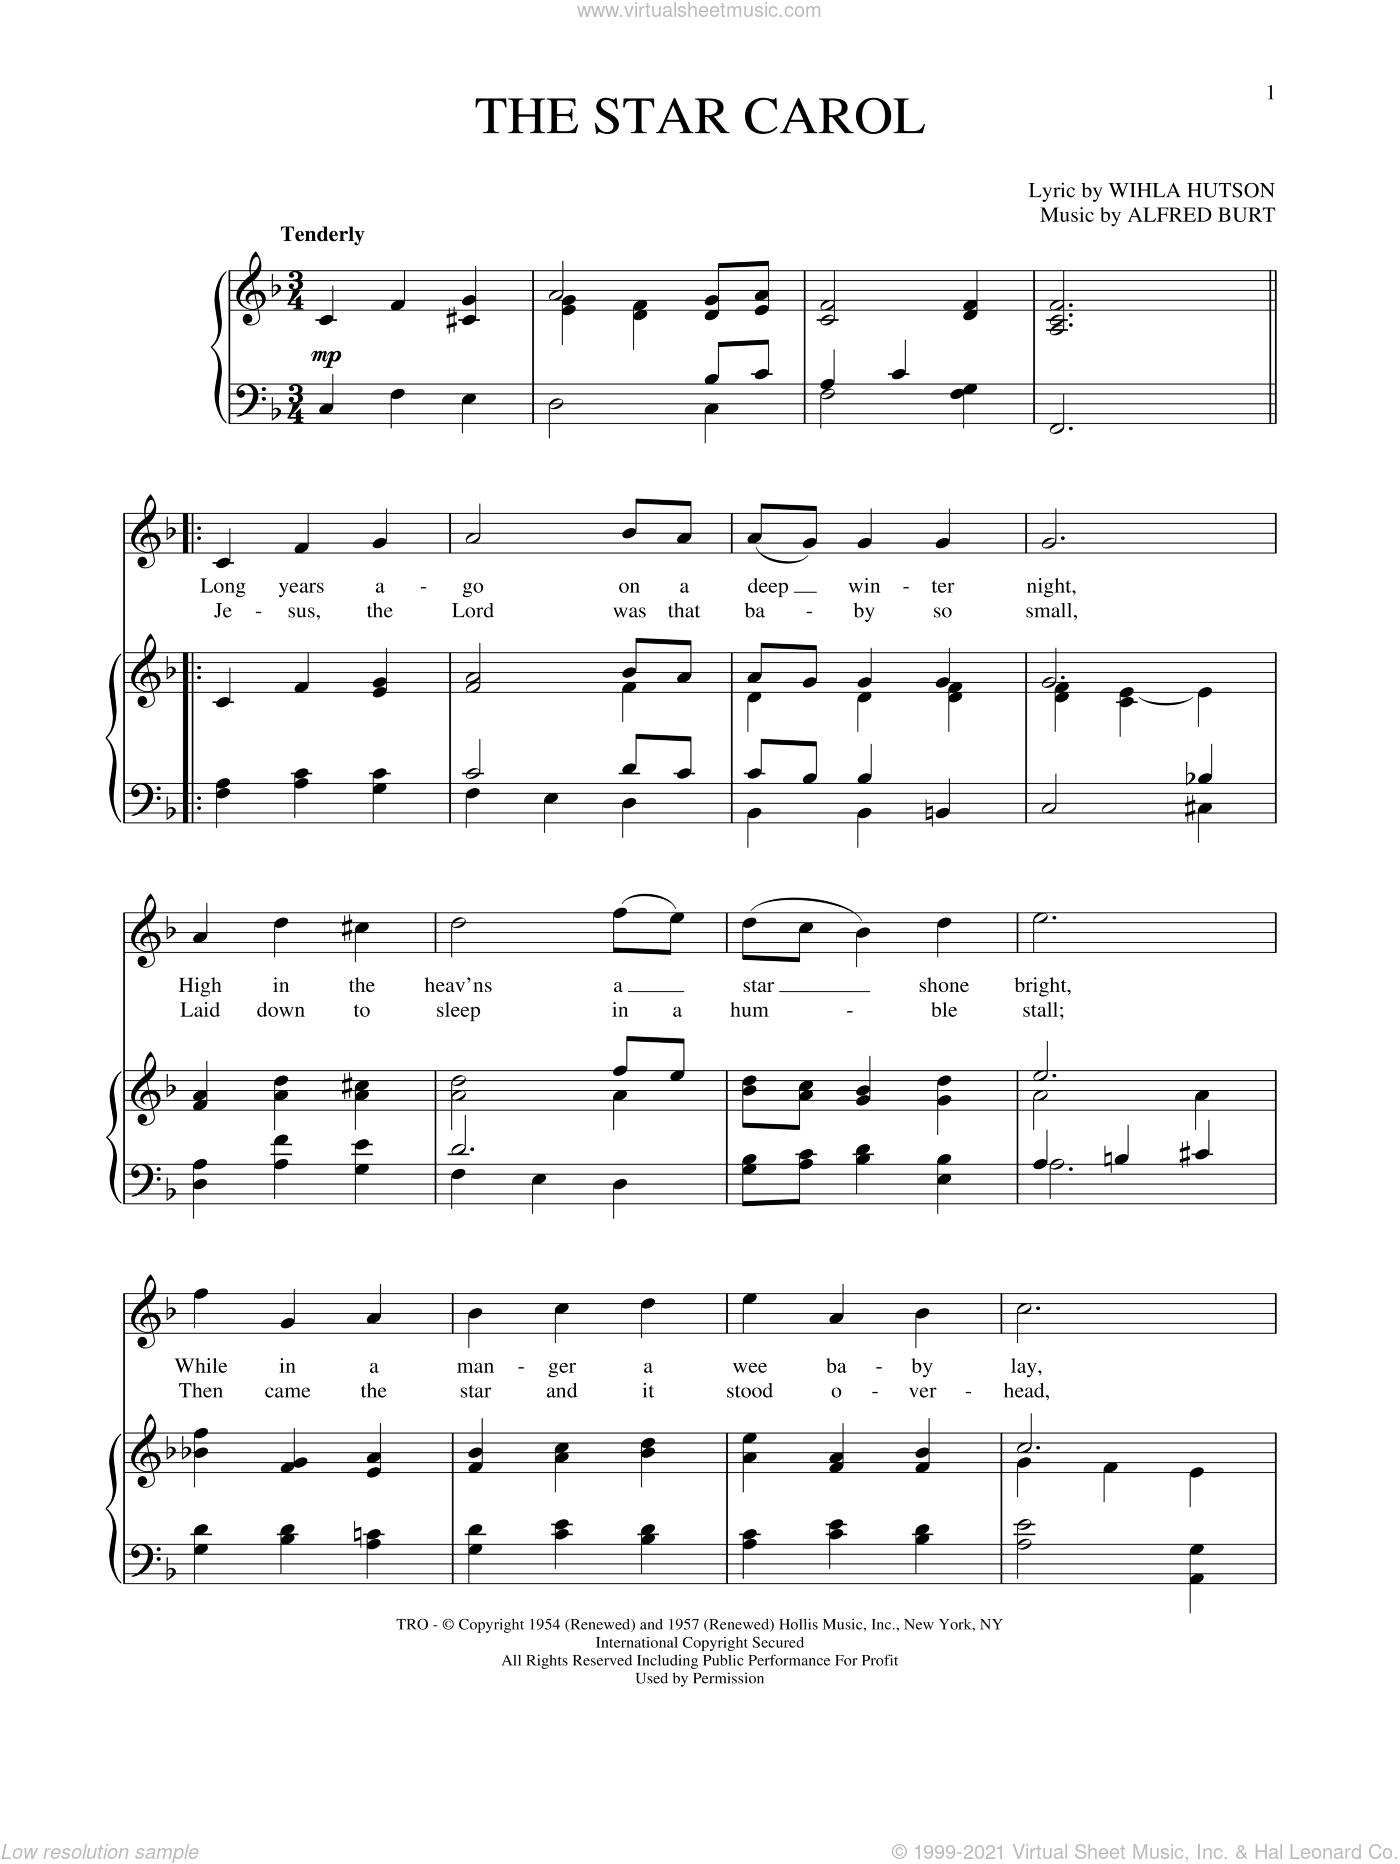 The Star Carol sheet music for voice and piano (High Voice) by Alfred Burt and Wihla Hutson, intermediate